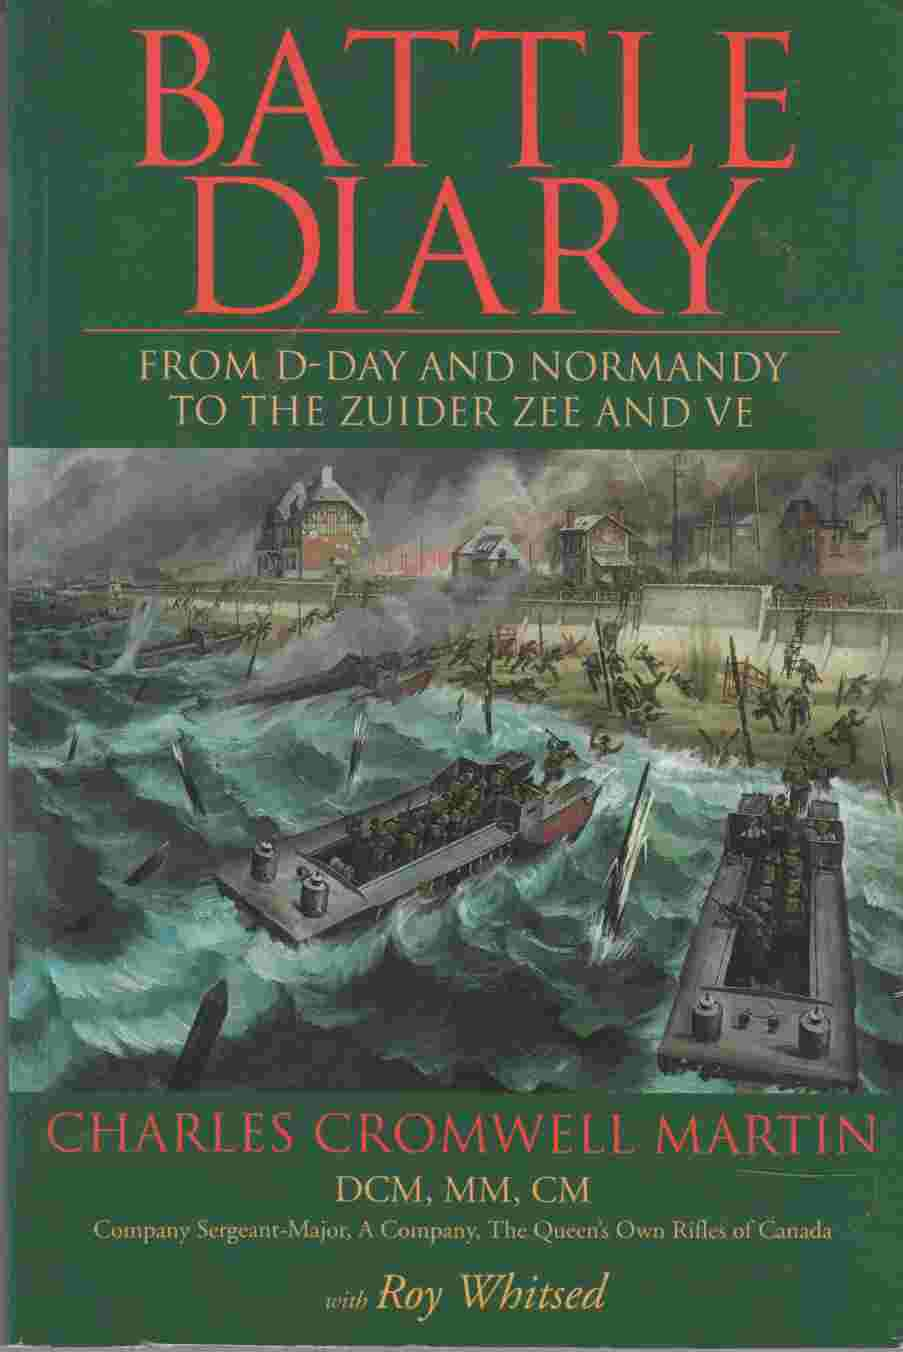 Image for Battle Diary From D-Day and Normandy to the Zuider Zee and VE